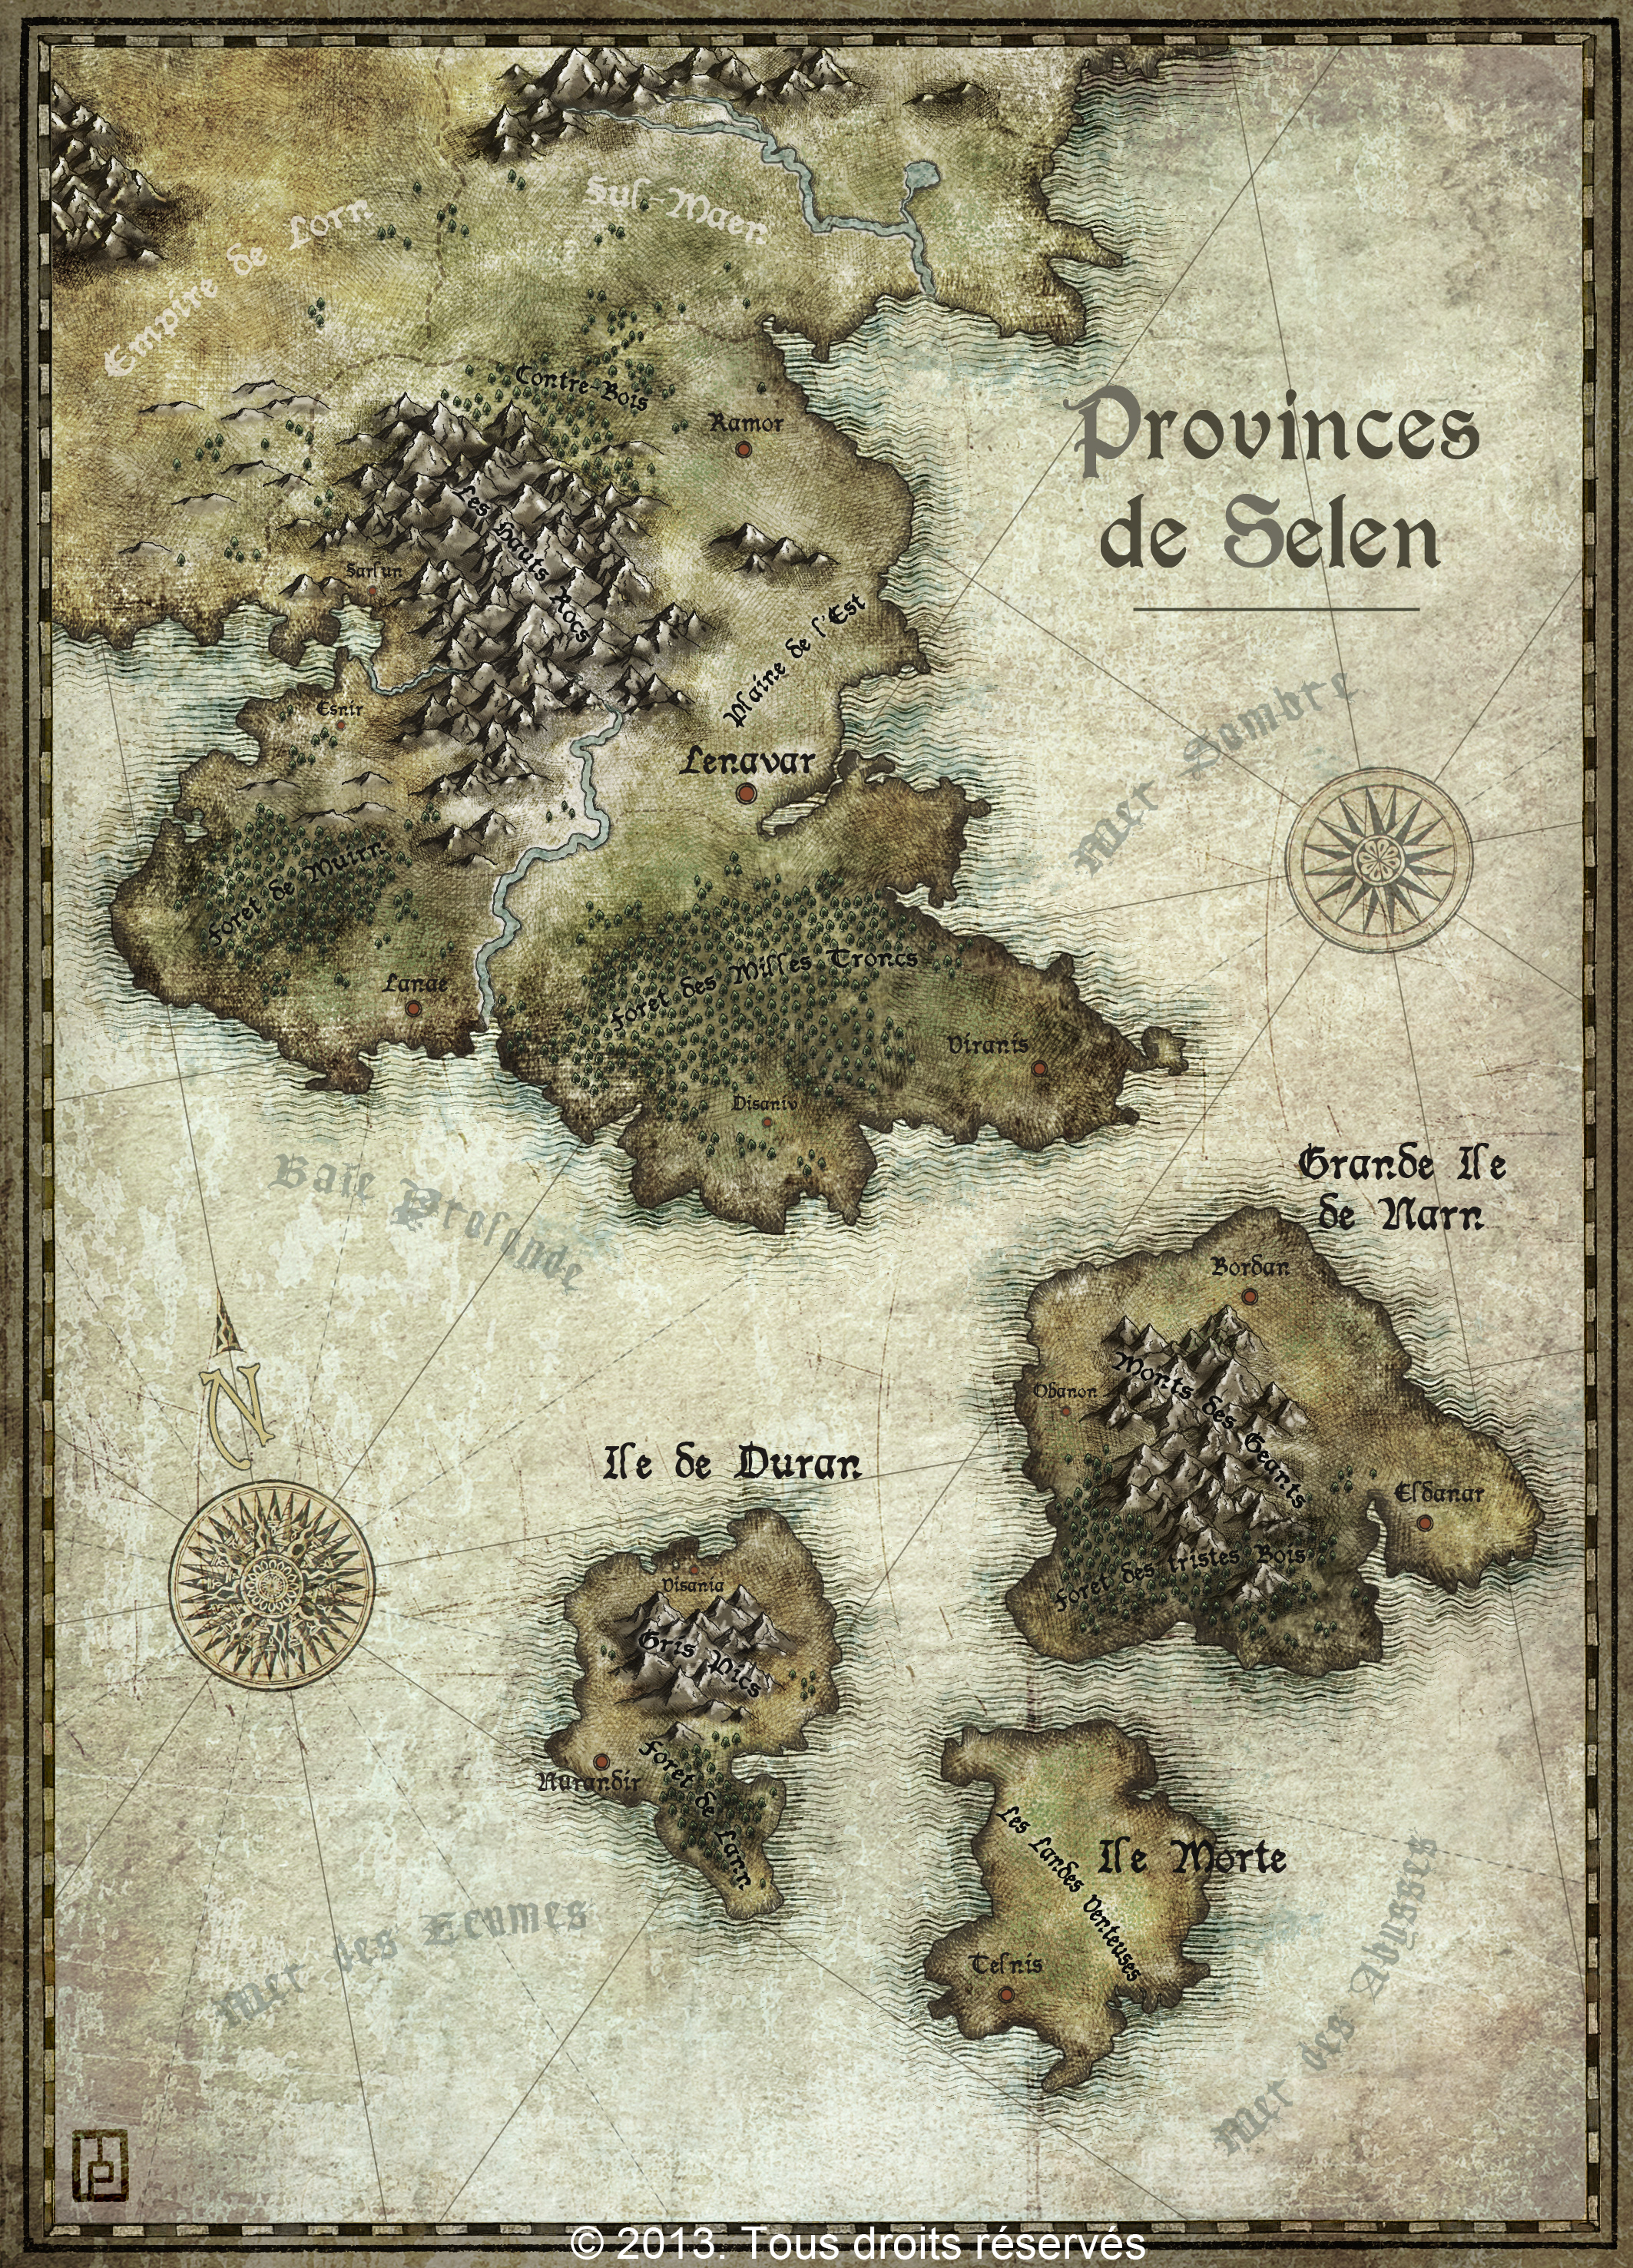 Provinces of Selen - personnal project - Nominated for Featured map April 2013